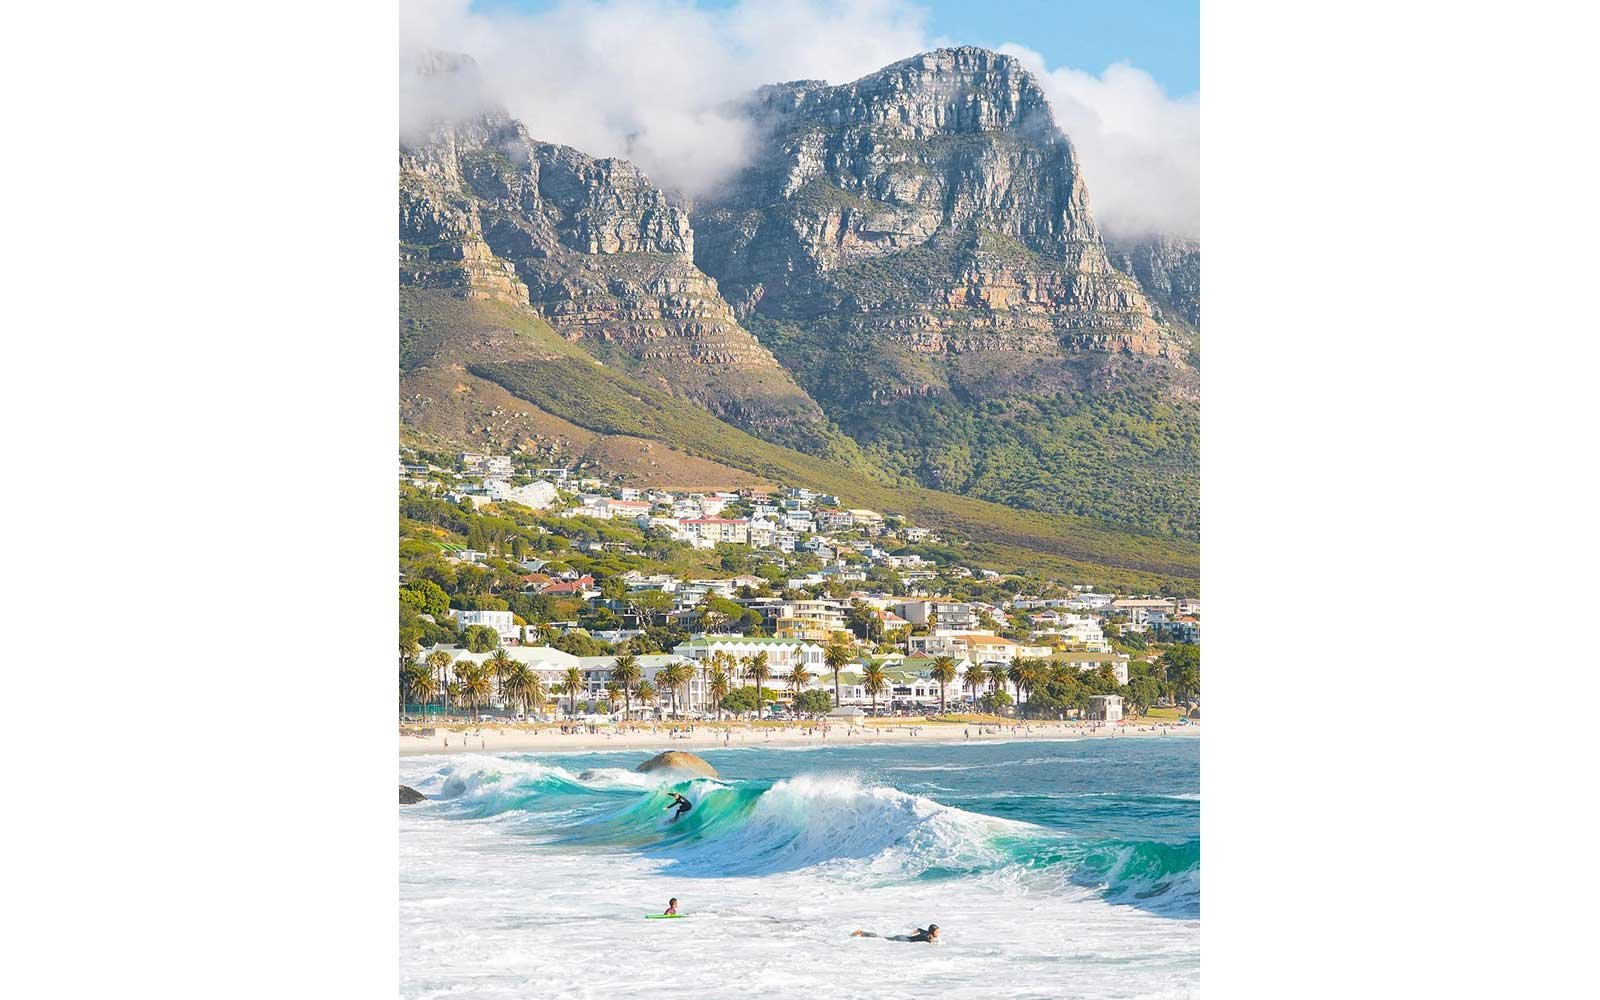 Surfers on the beach in Cape Town, South Africa